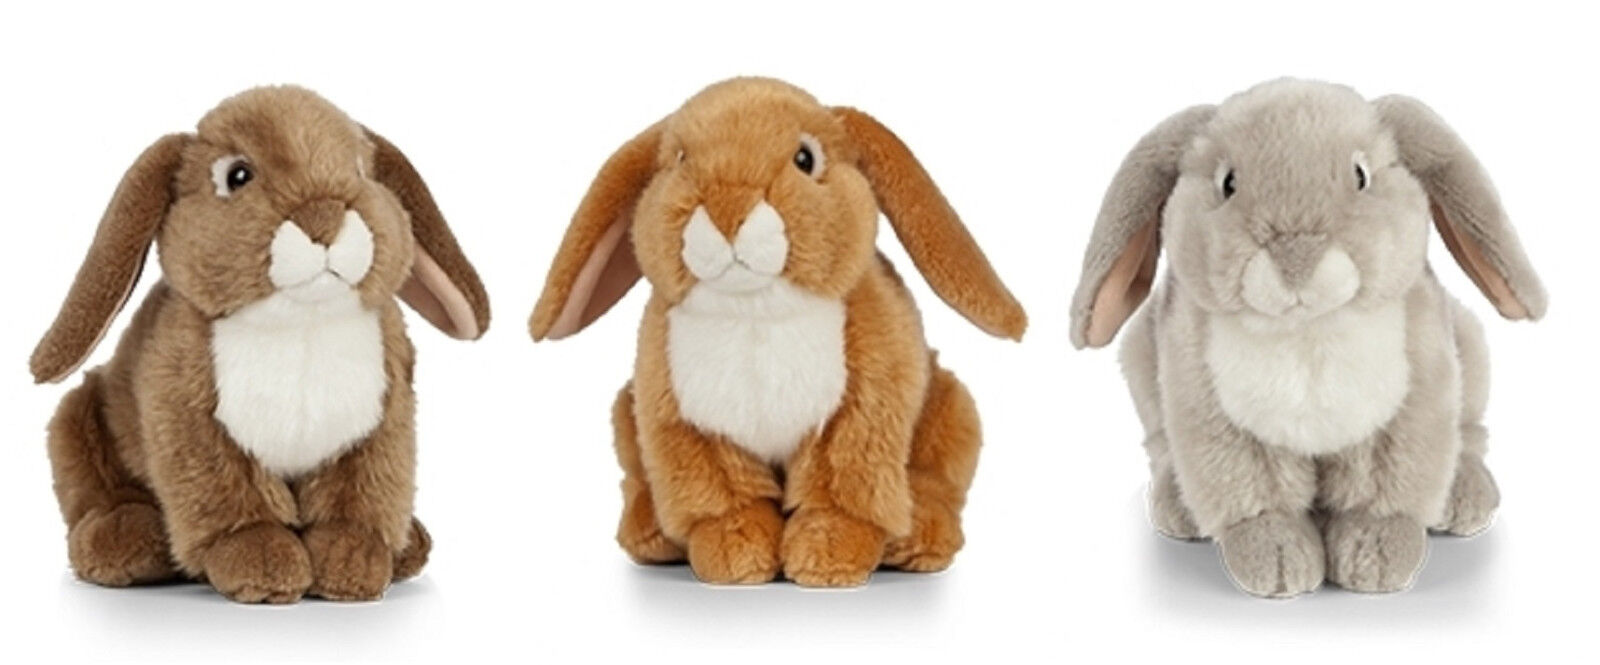 LIVING NATURE FRENCH LOP EArot RABBIT - AN472 SOFT FLUFFY BUNNY STUFFED PLUSH